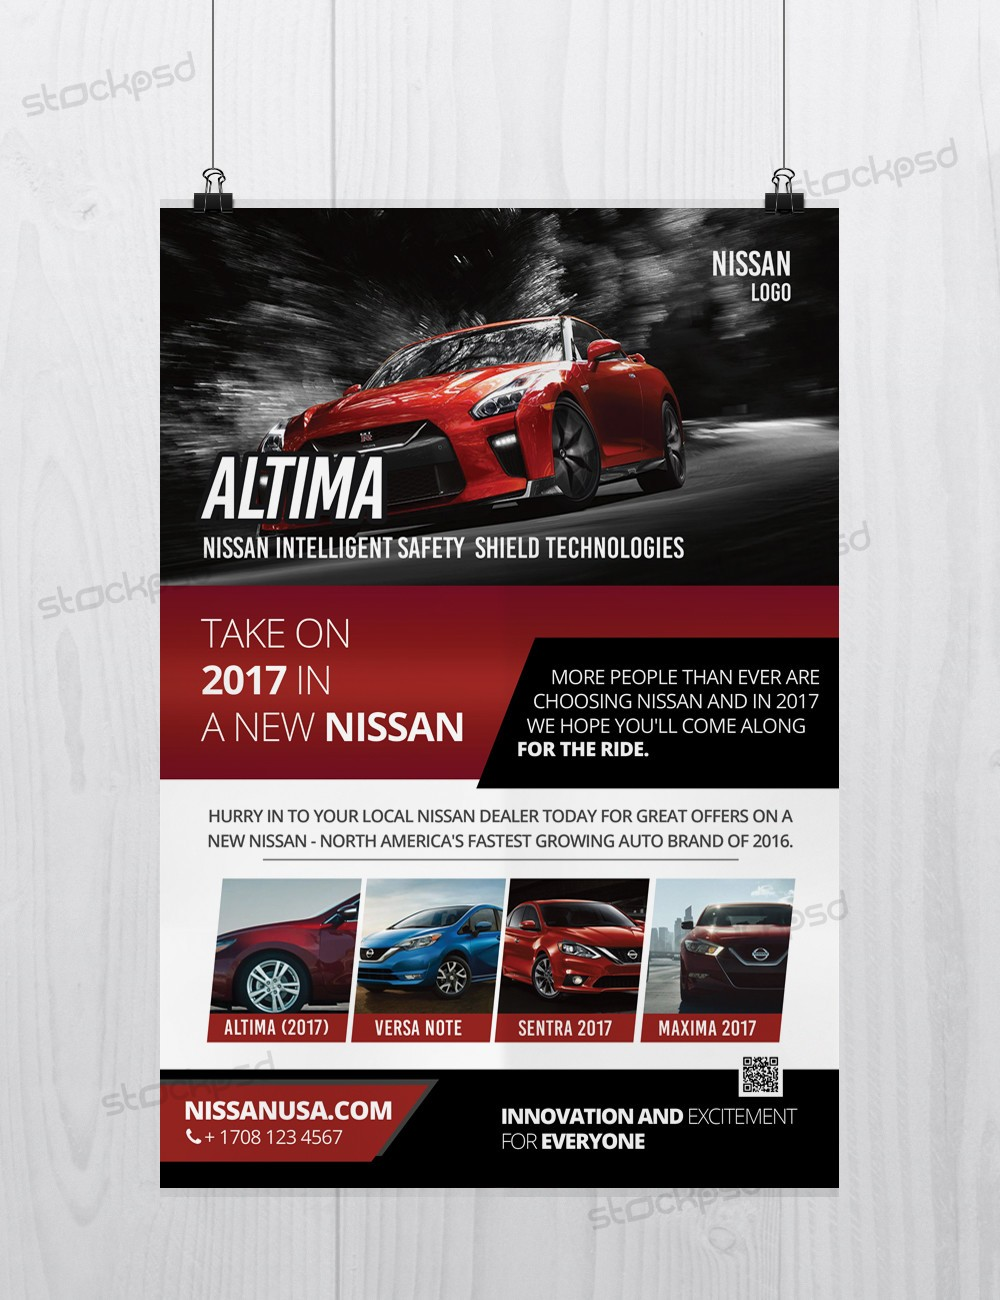 stockpsd net freebie templates nissan altima car free psd